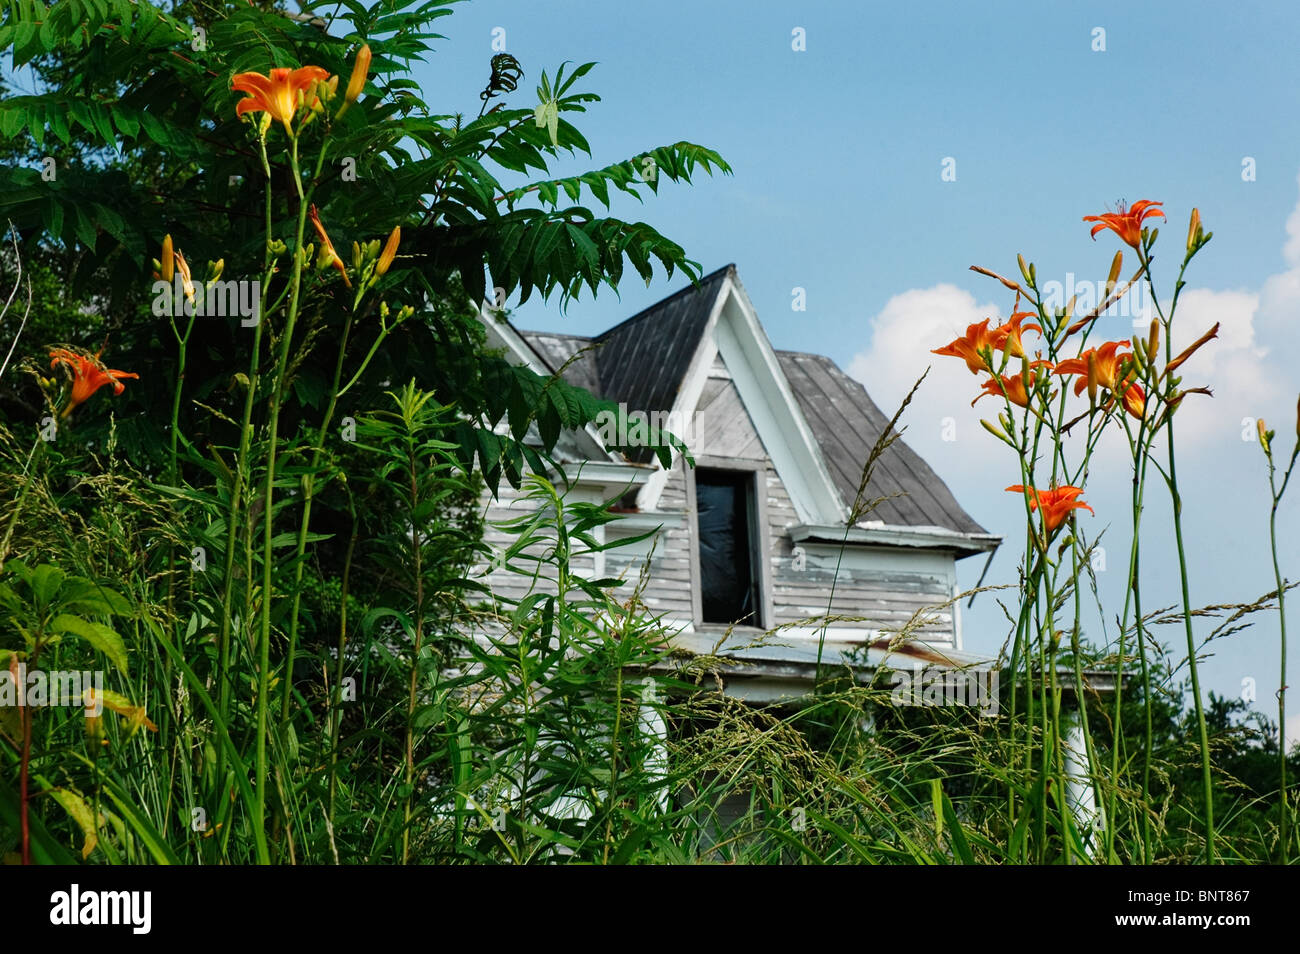 Abandoned farm house along the Tebbs Bend Civil War battle site road near Green River, KY. Stock Photo